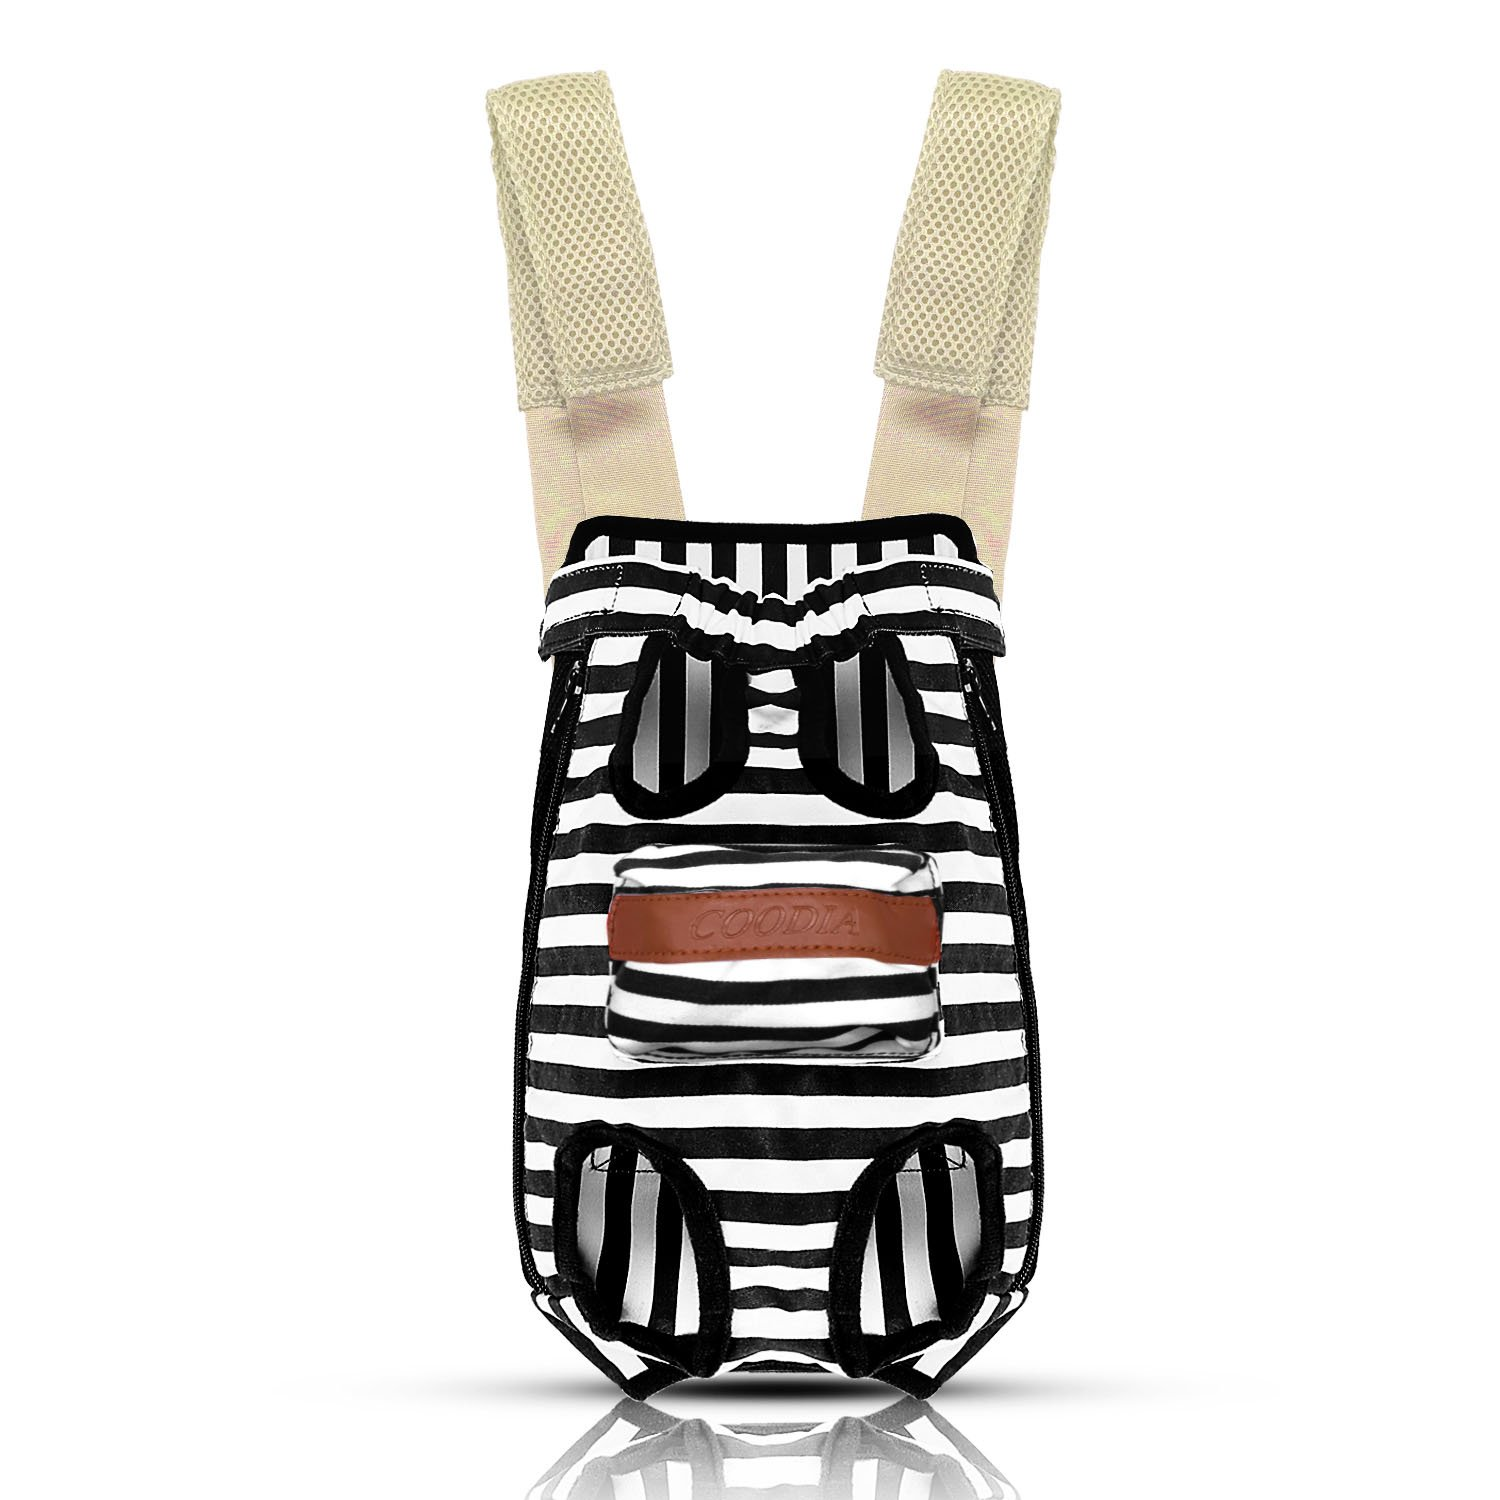 COODIA Legs Out Front Pet Dog Carrier Front Chest Backpack Pet Cat Puppy Tote Holder Bag Sling Outdoor (S) by COODIA (Image #1)